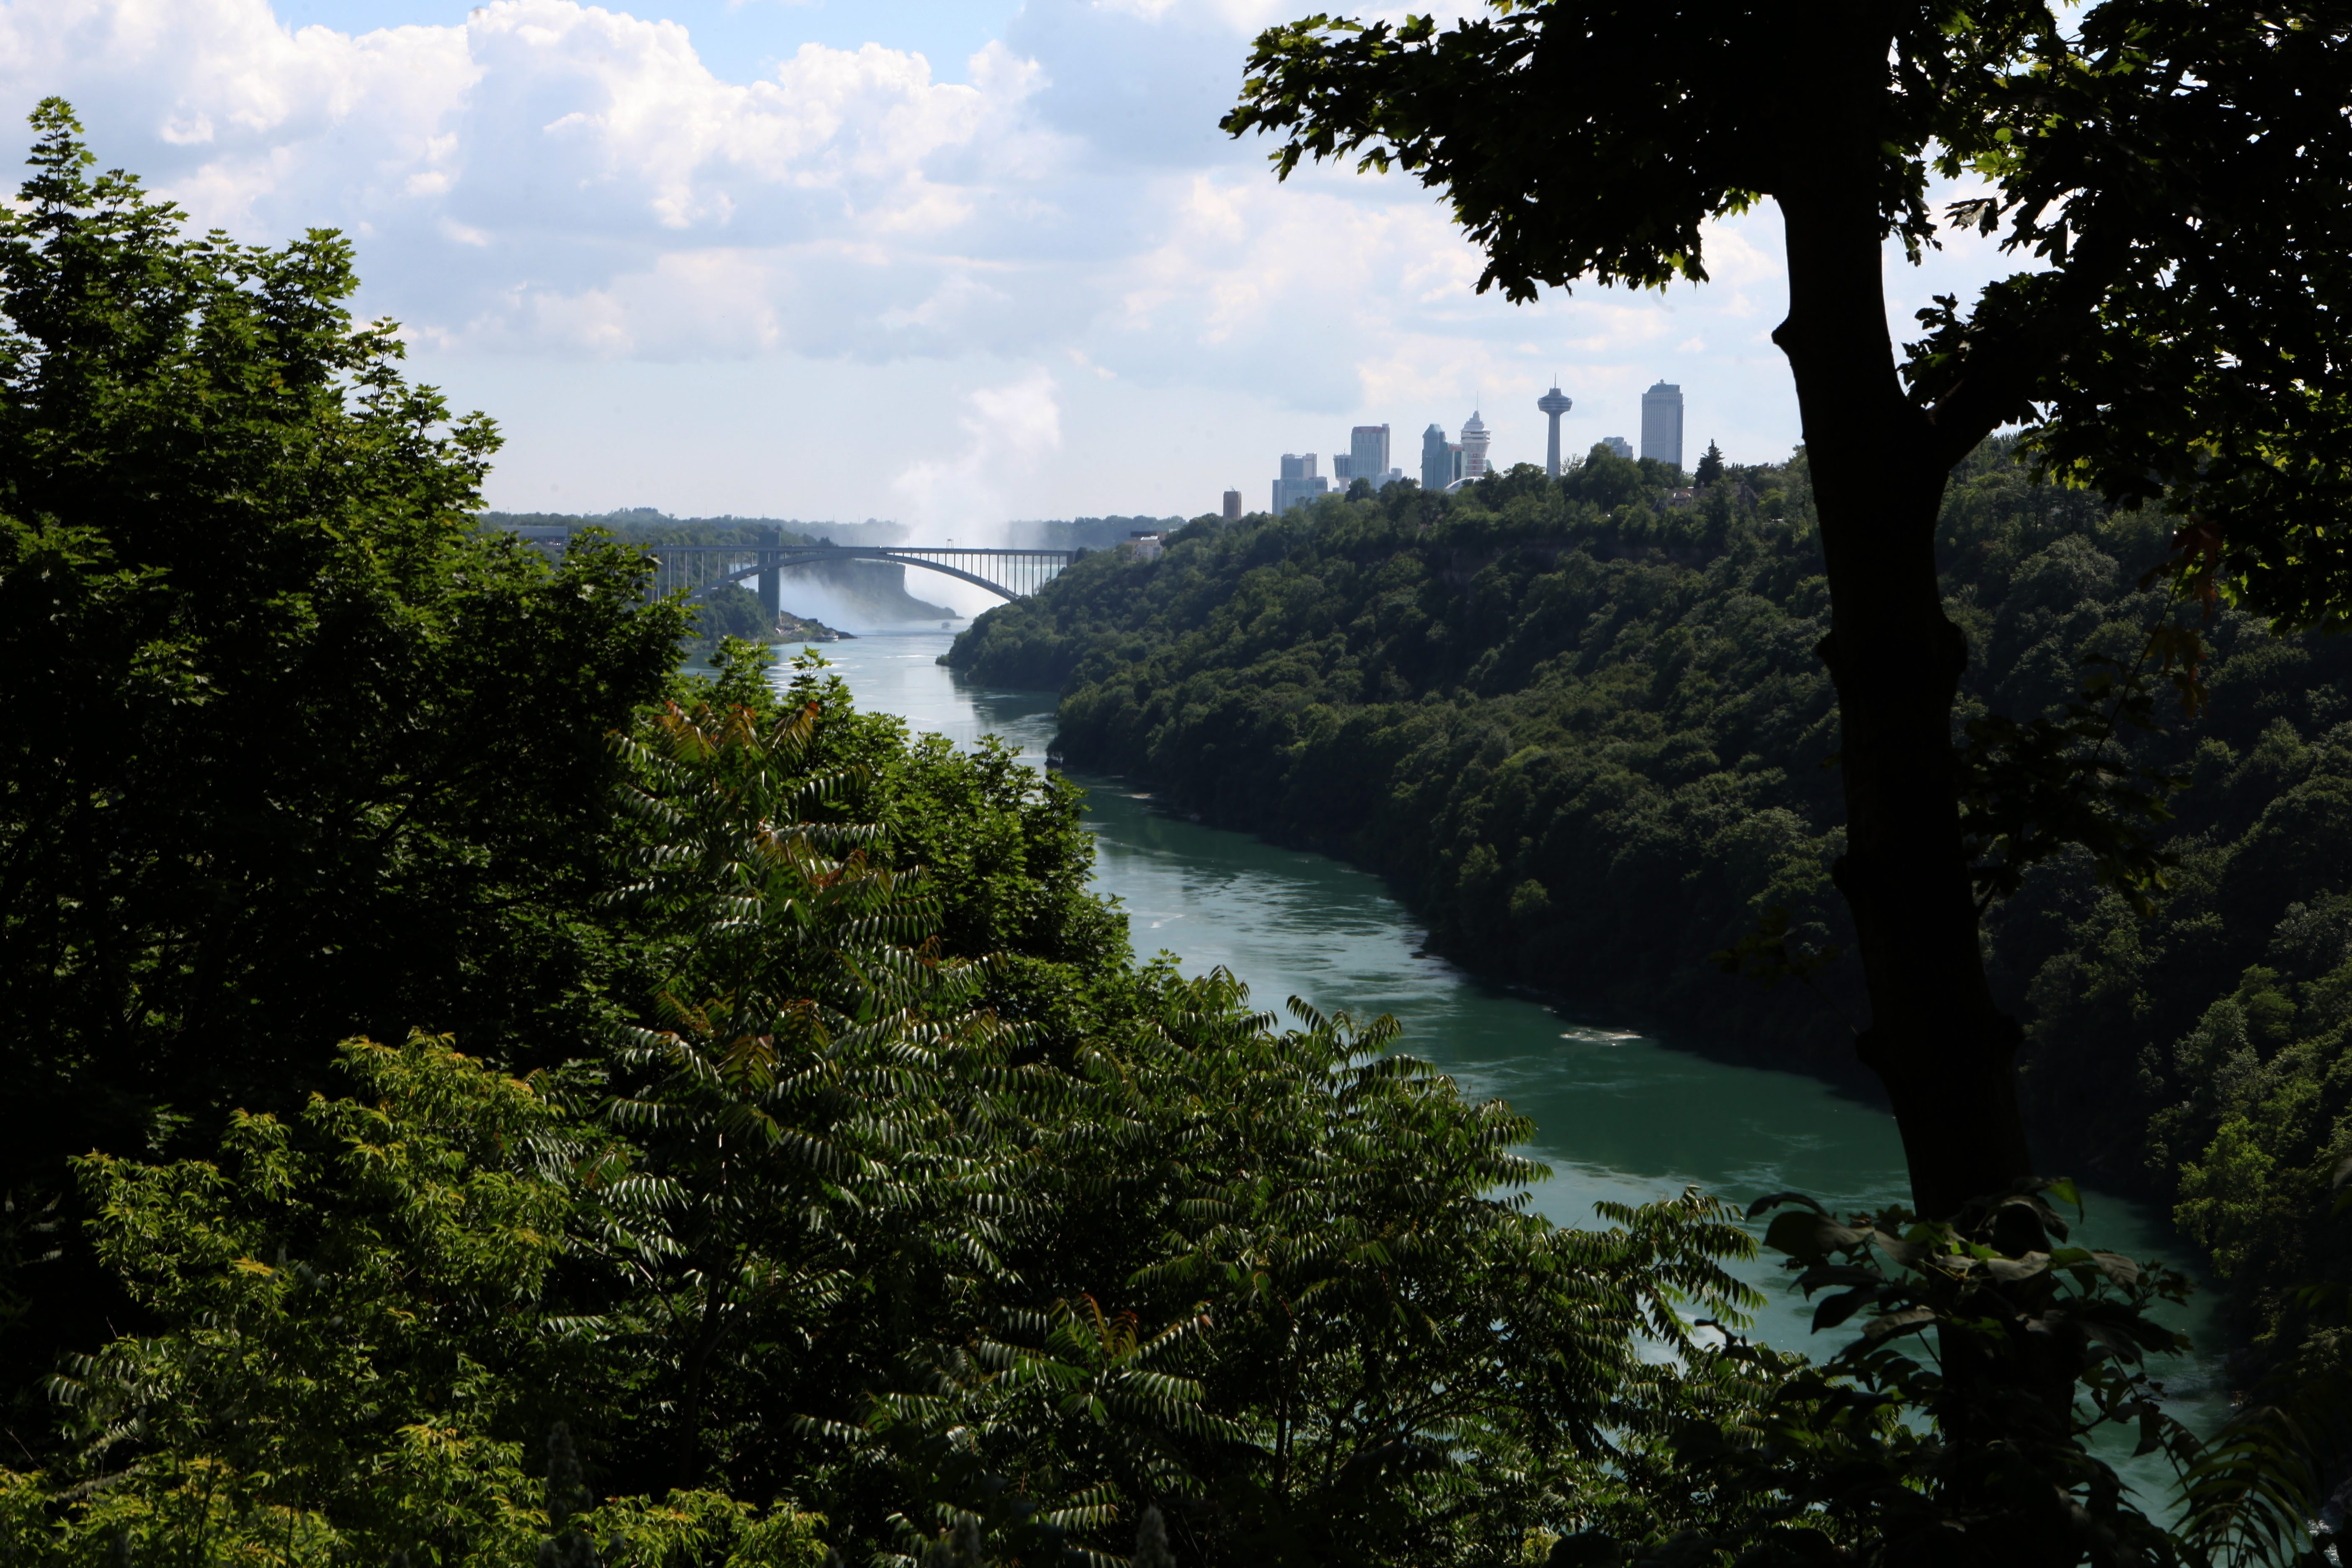 Place One: The view from the parking lot next to the Whirlpool Bridge on Whirlpool St. in Niagara Falls.